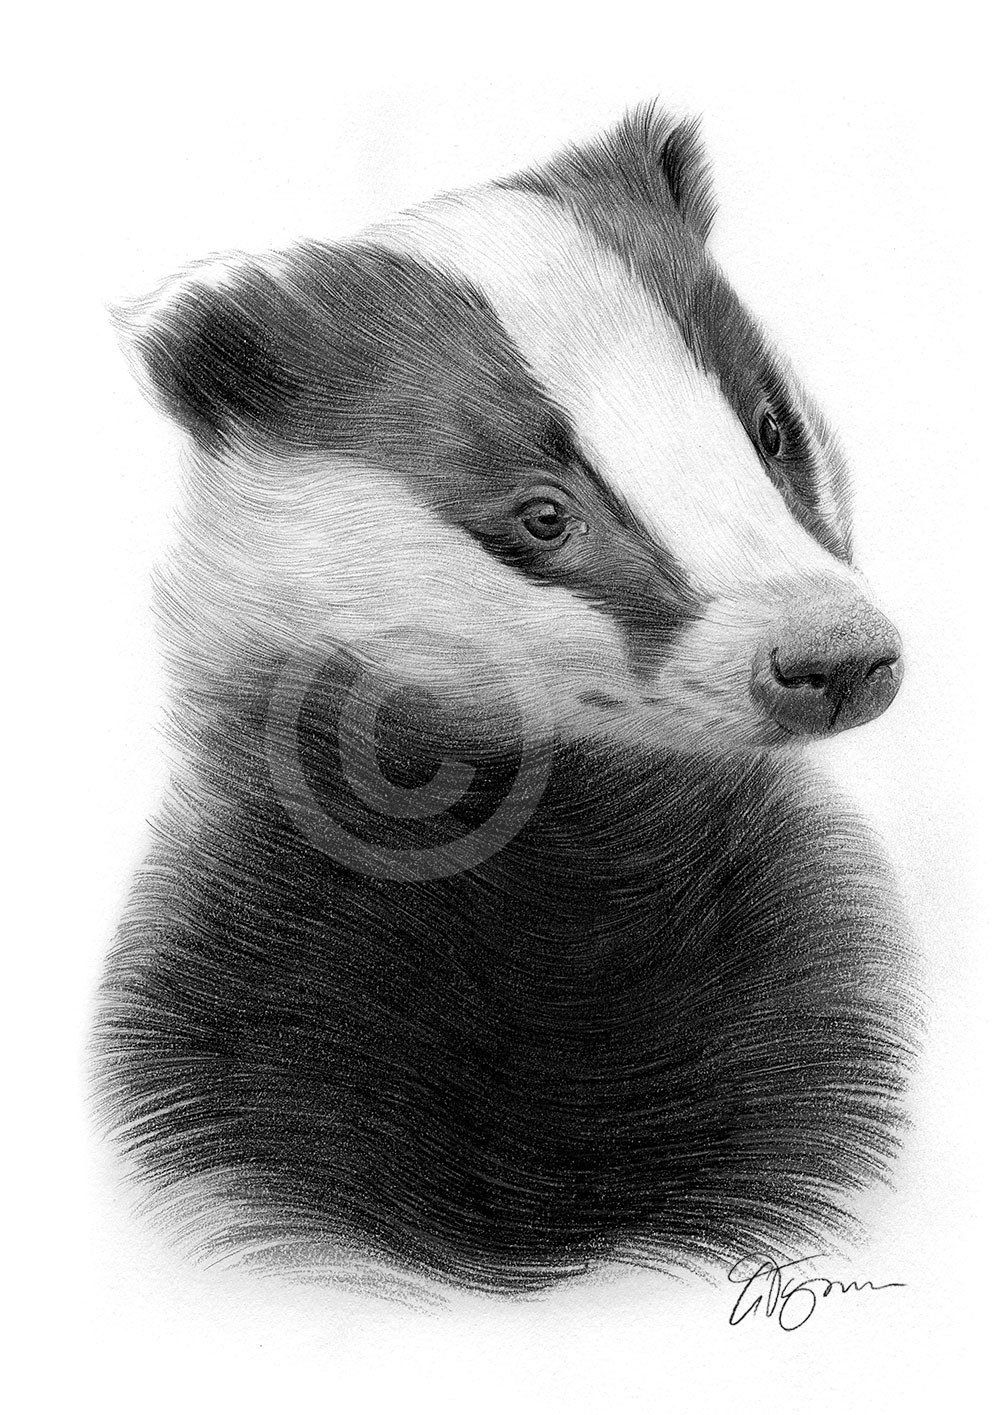 Pencil drawing of a young badger by artist Gary Tymon